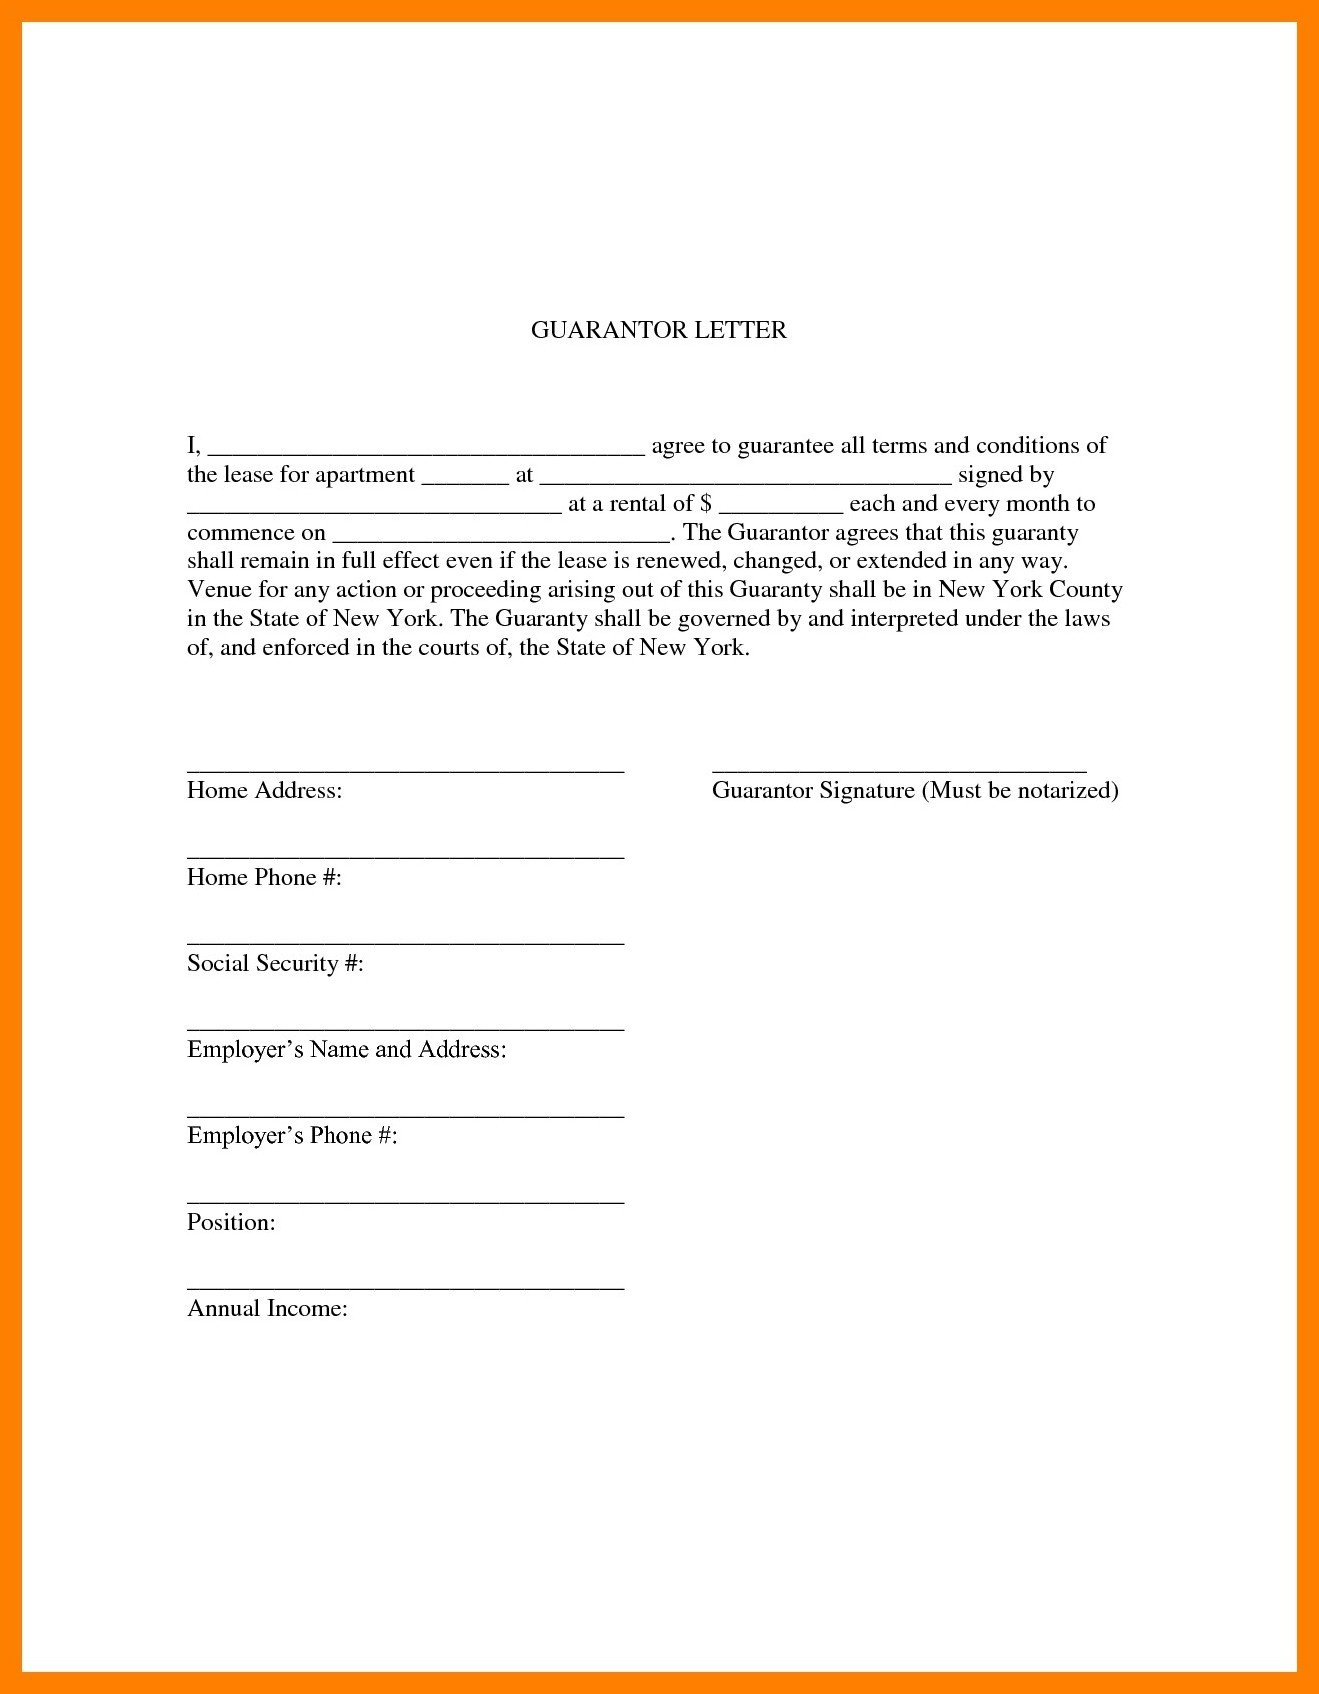 Tenant Guarantor Letter Template - Samples Guarantor Letter for Employment Best 5 Ways to Write A